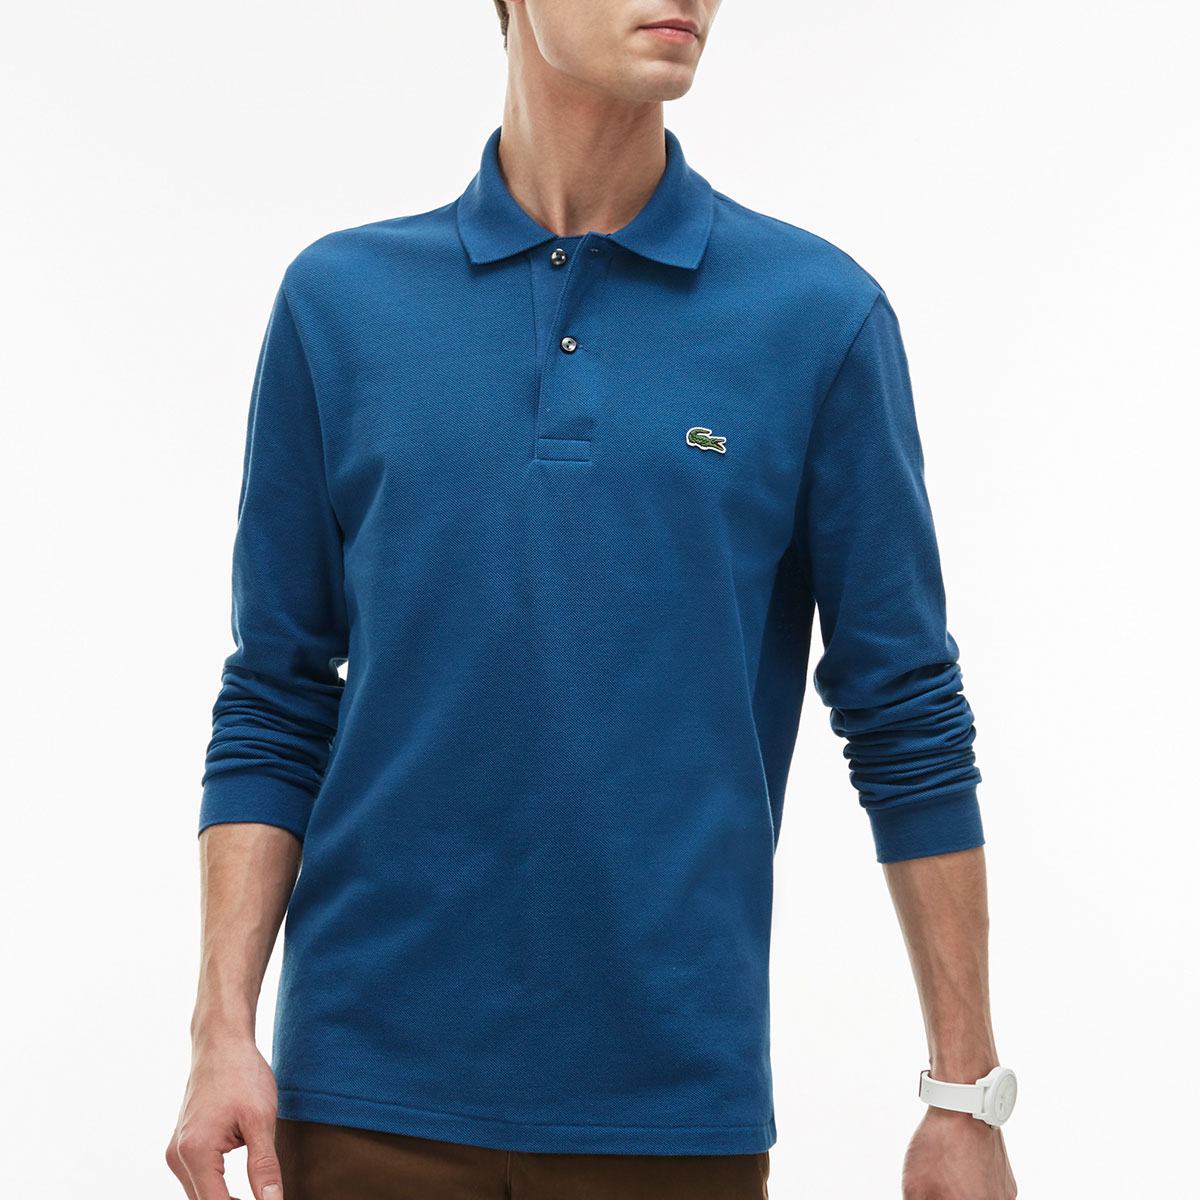 Lacoste mens classic cotton long sleeve l1312 polo shirt for Lacoste polo shirts ebay